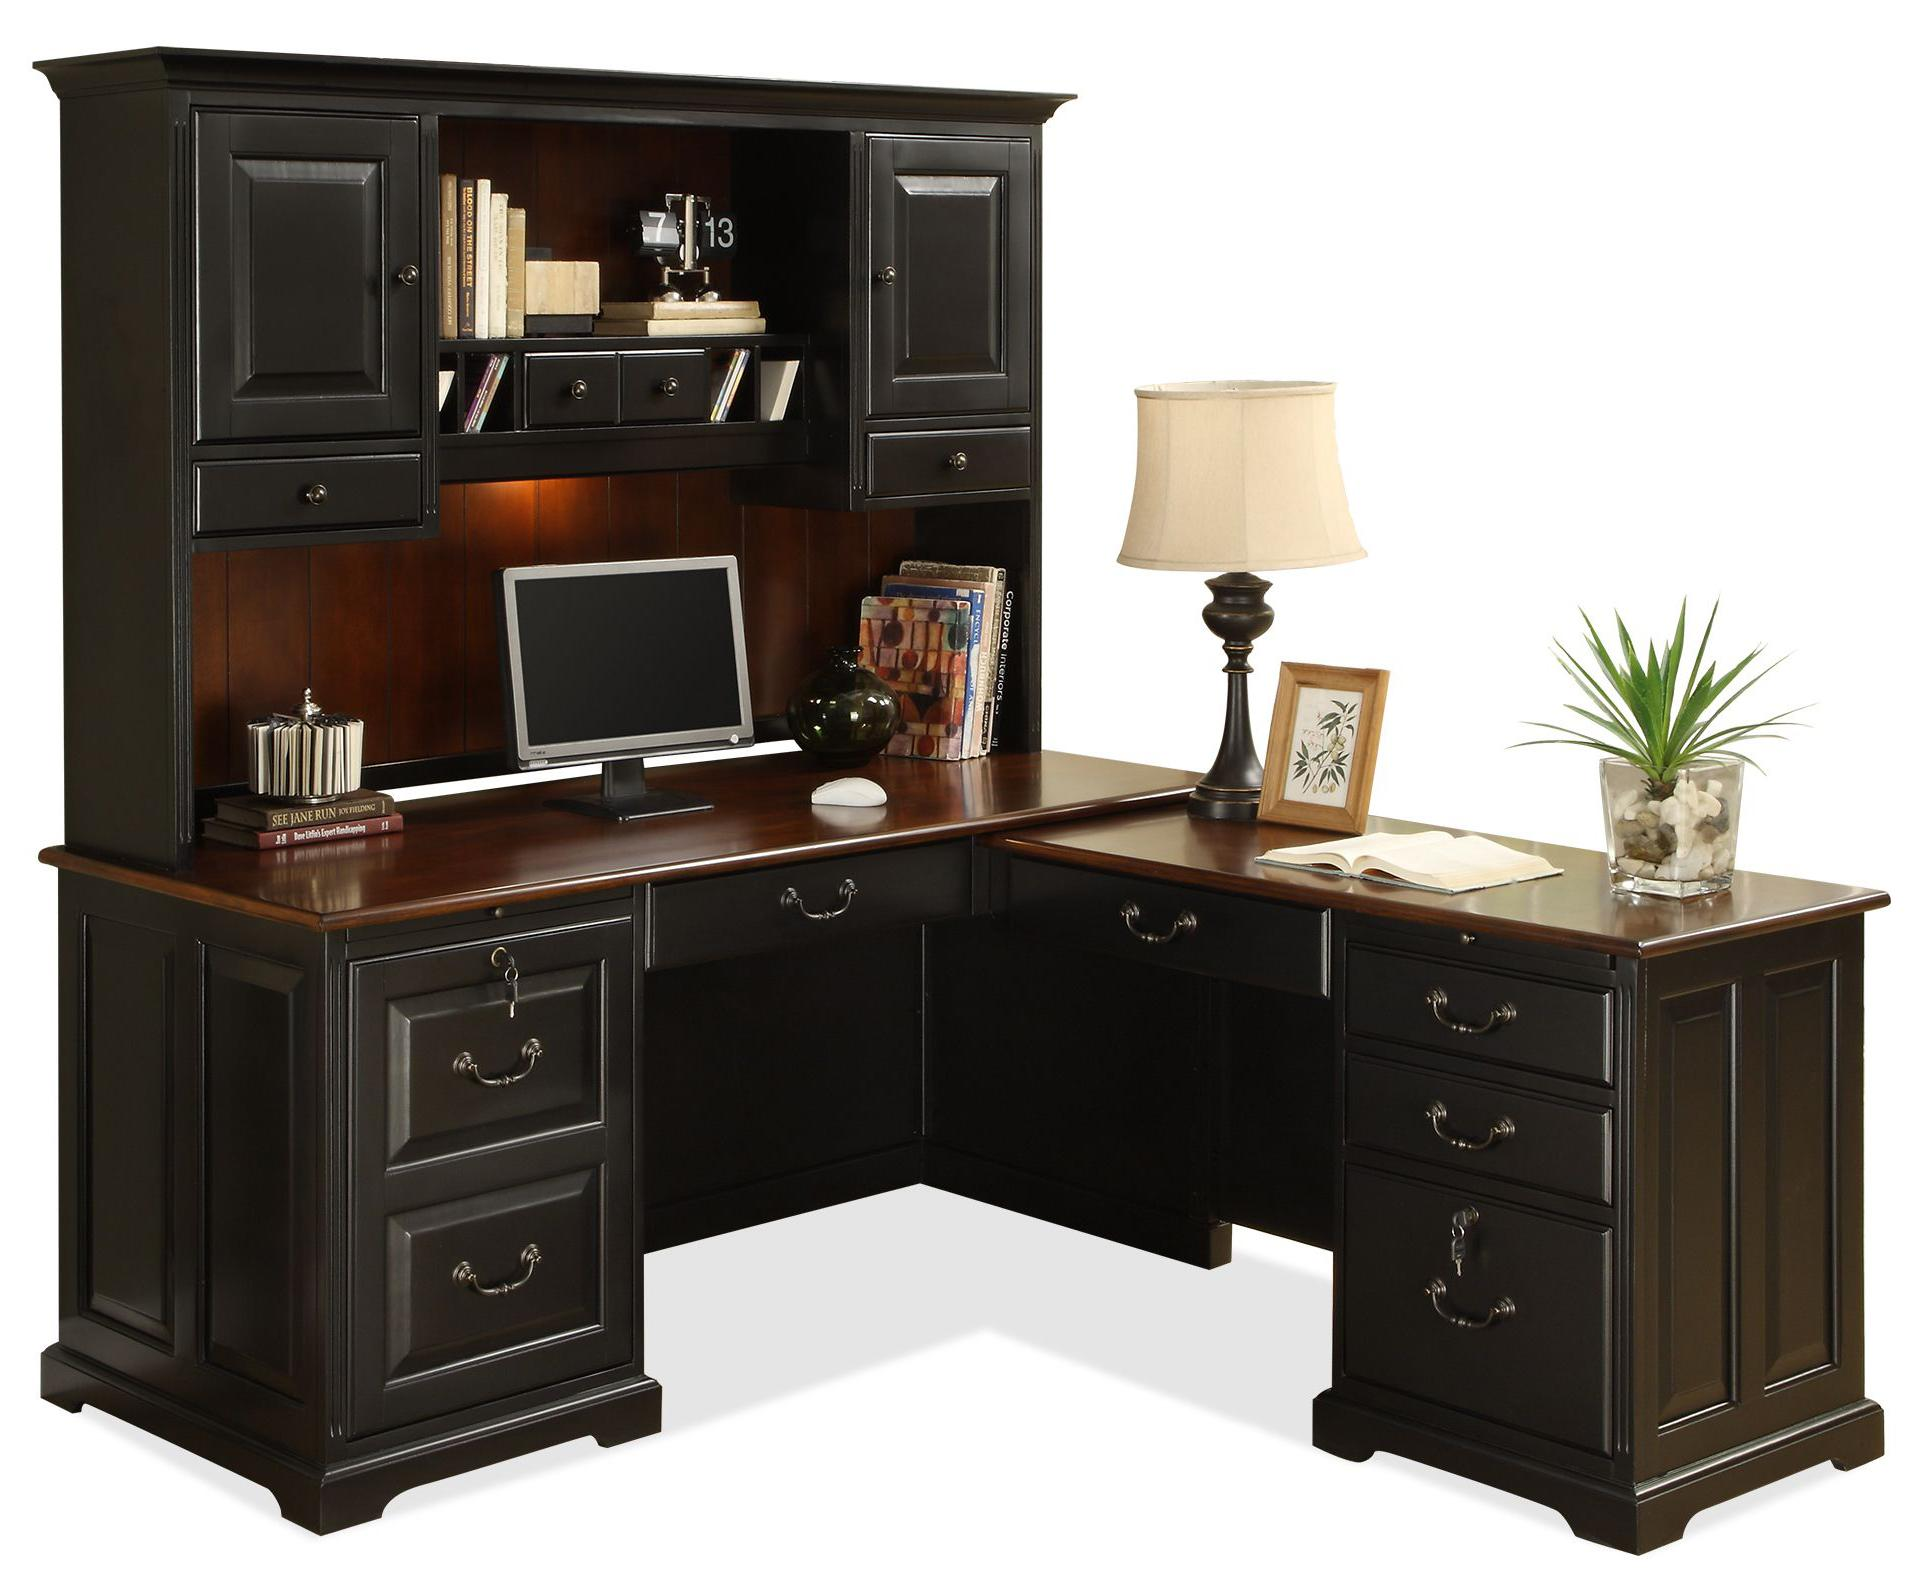 Cozy L-Shape Computer Workstation Desk with Hutch l shaped computer desk with hutch